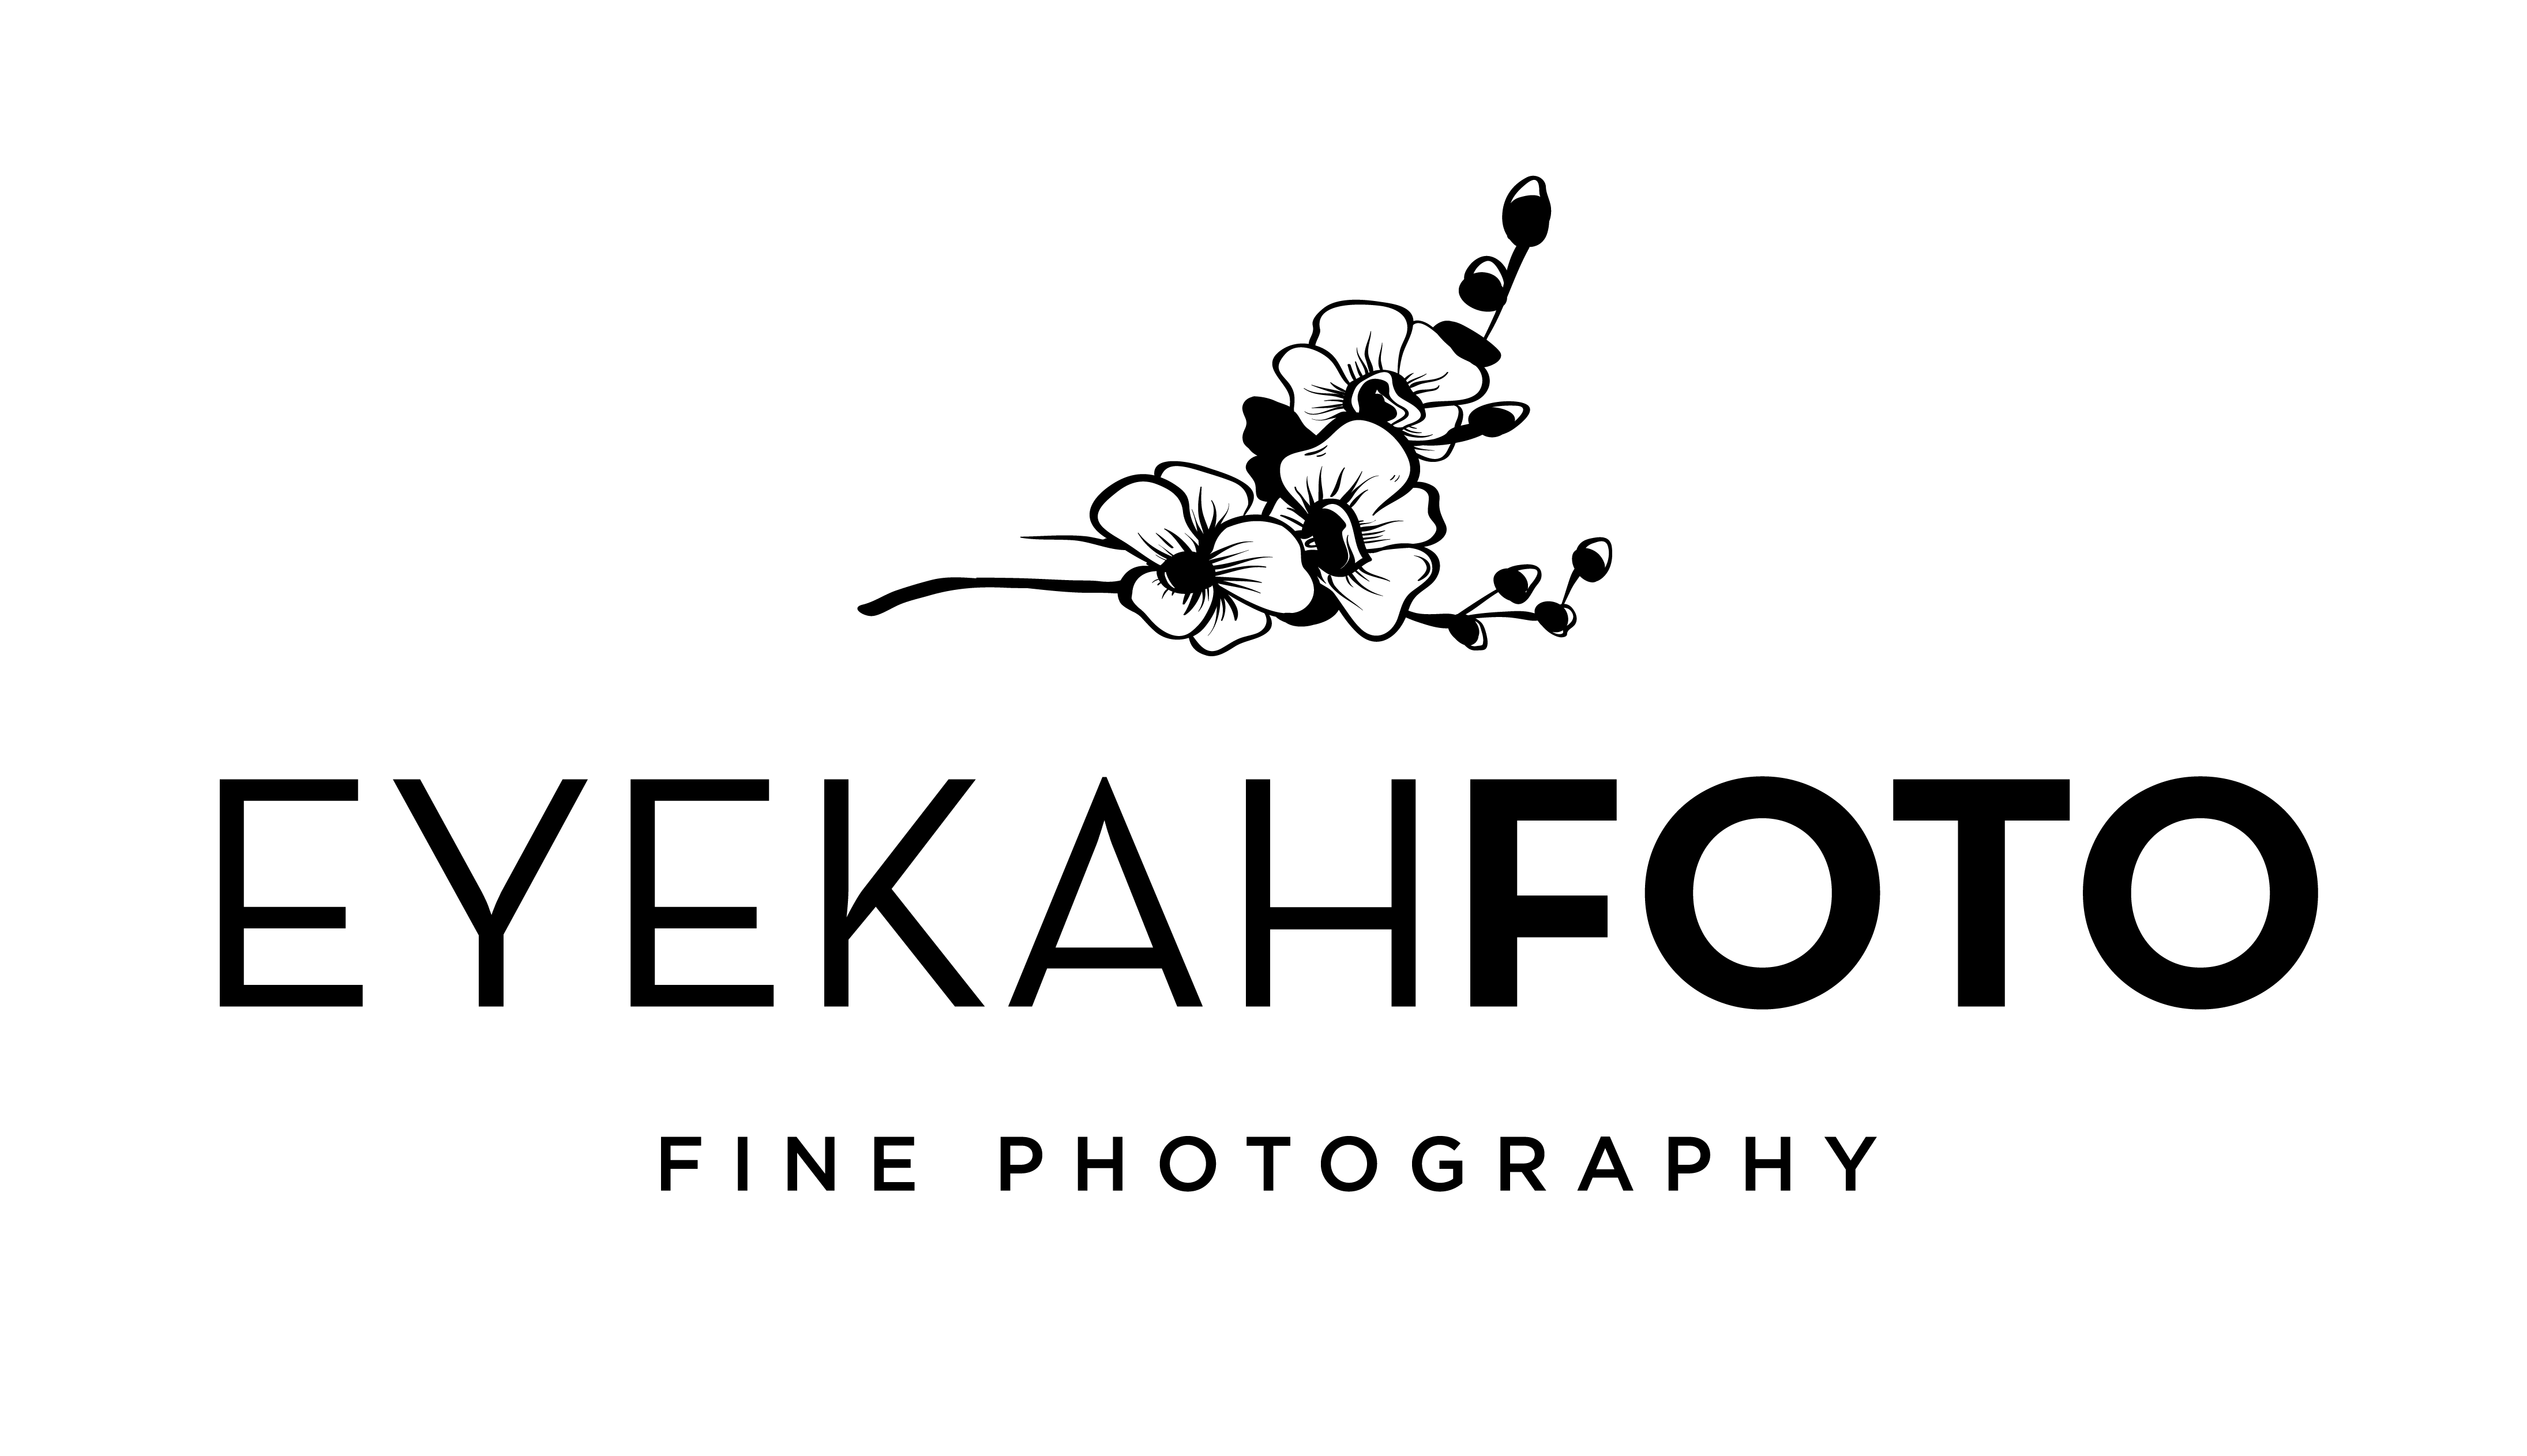 Eyekahfoto Fine Photography